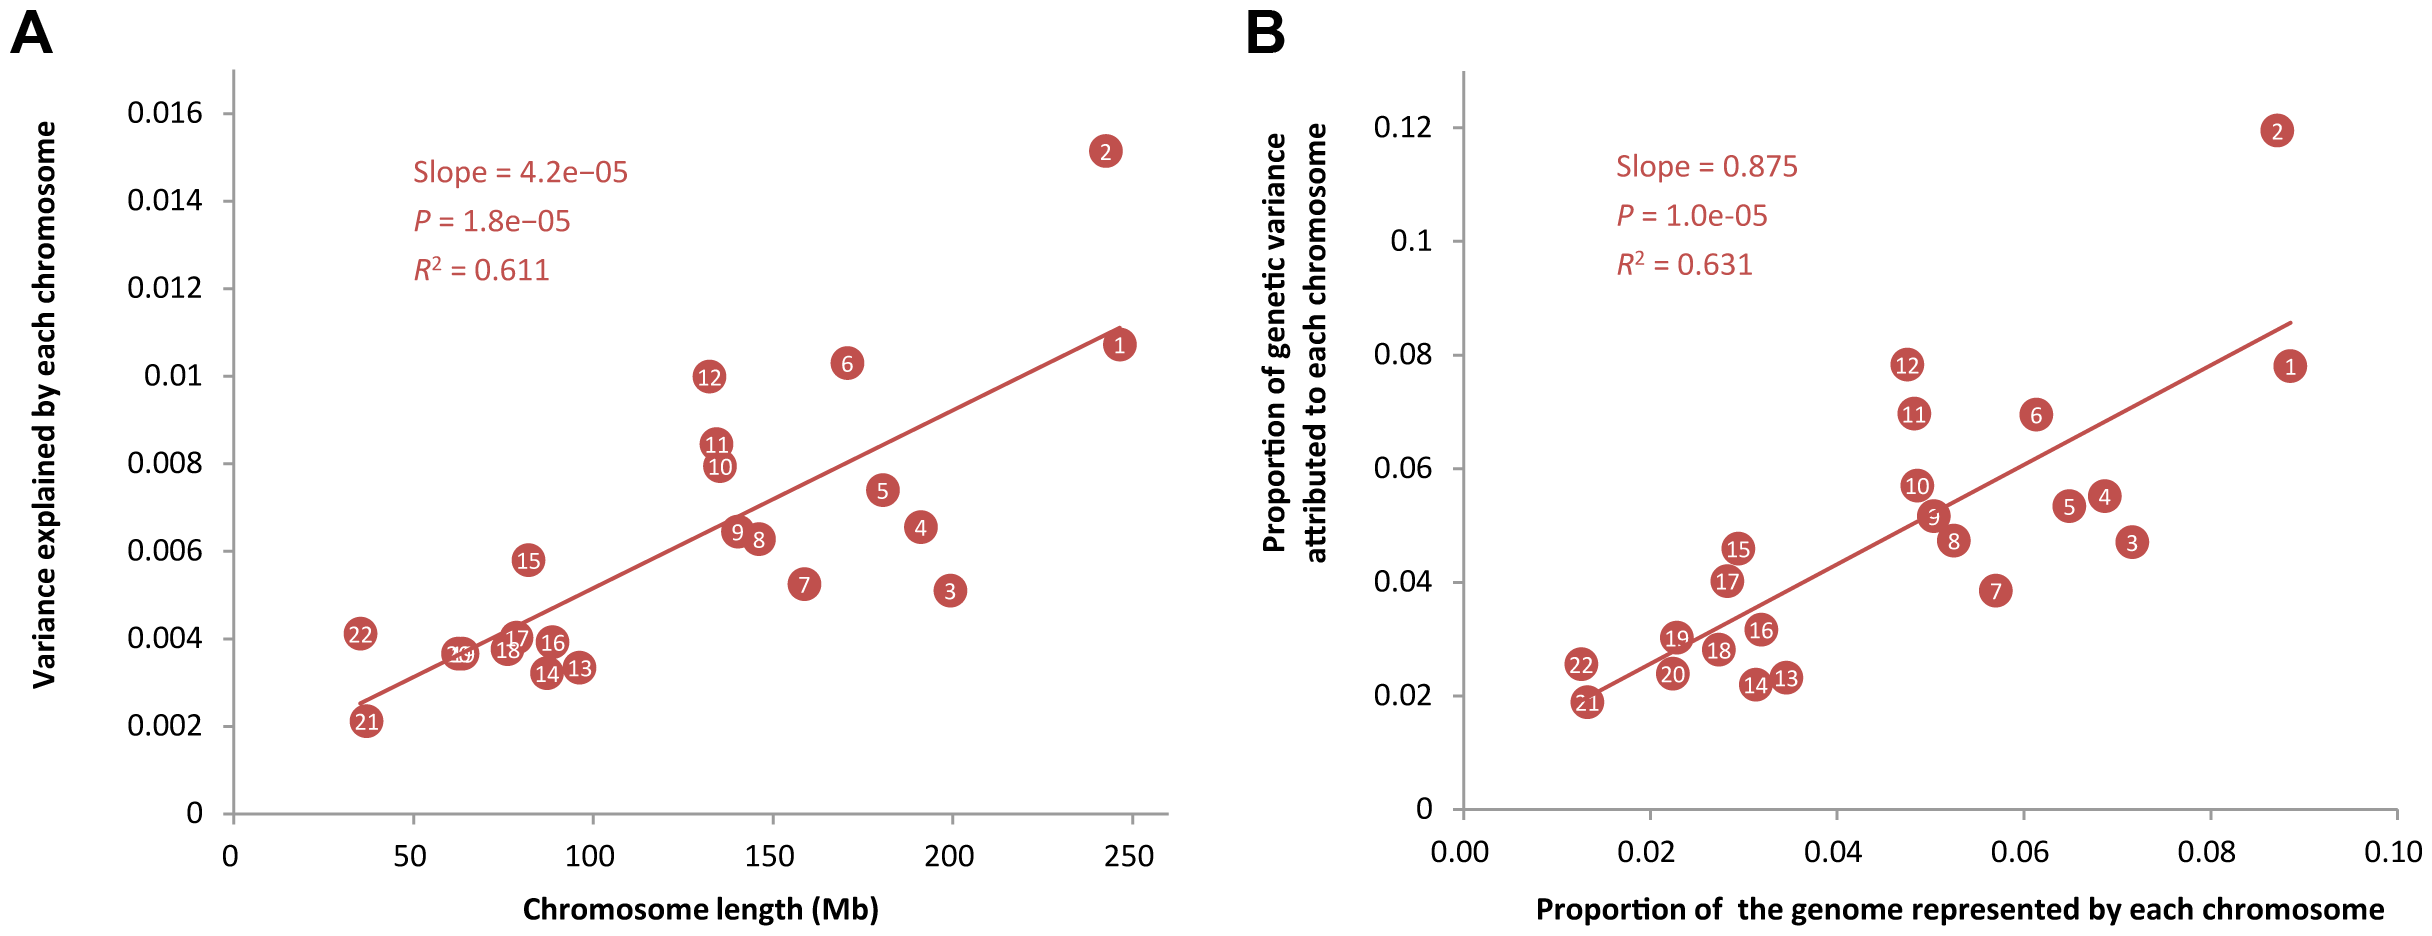 Proportion of variance attributed to each chromosome averaged across 47 traits against chromosome length.